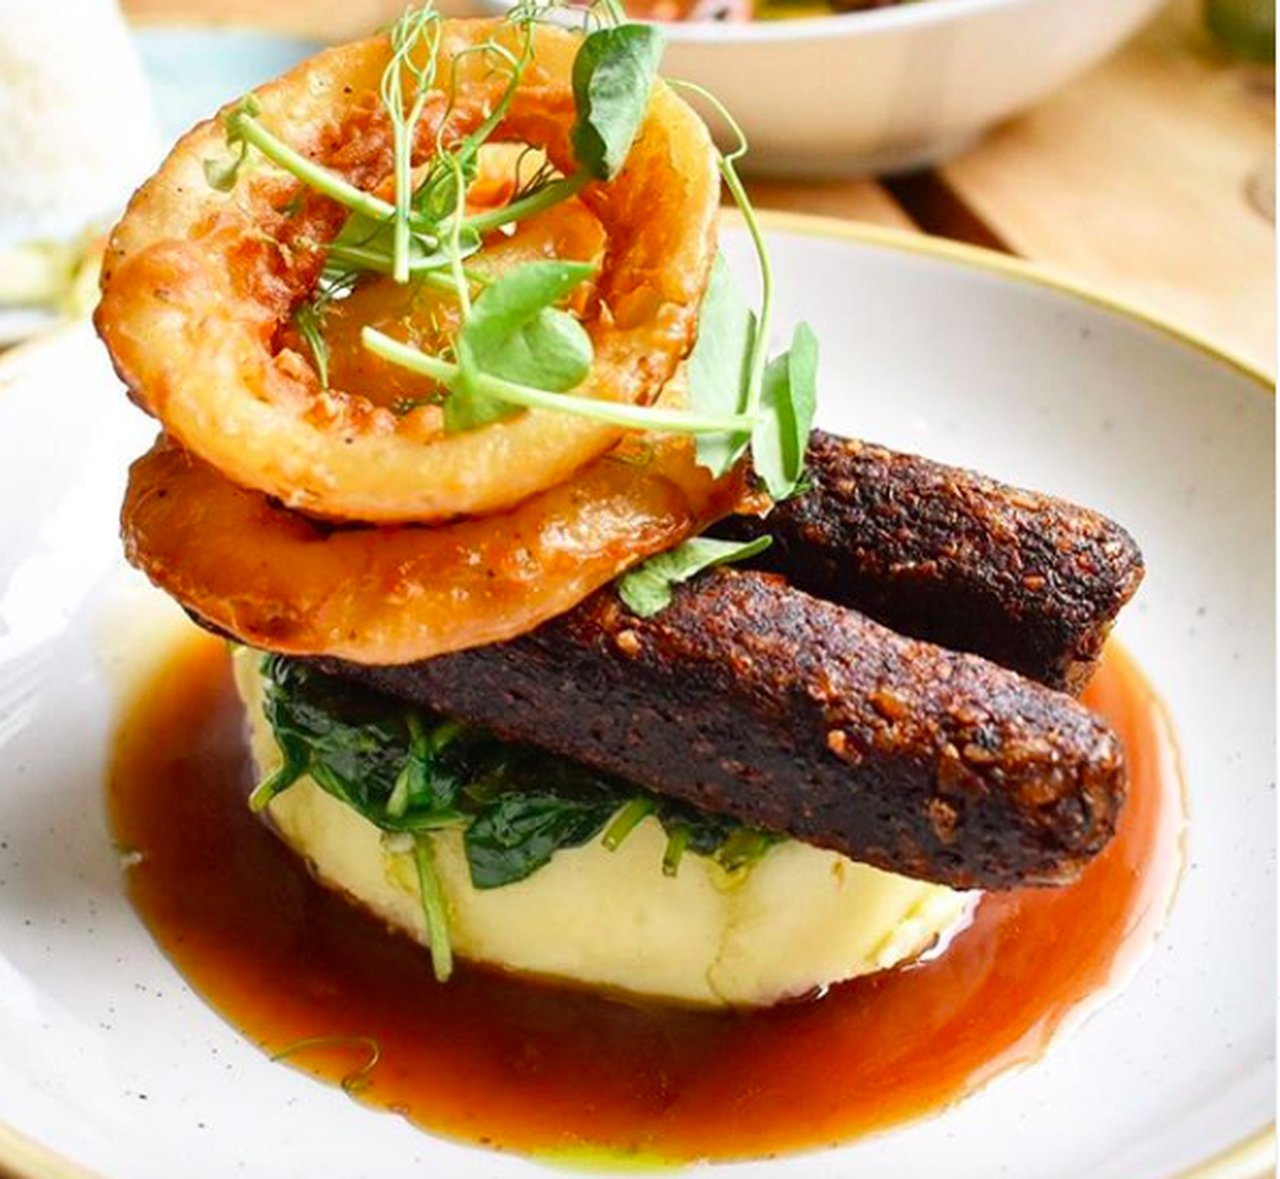 Smoked Mushroom and chestnut sausages on mushroom mash and wilted spinach, served with beer battered onion rings